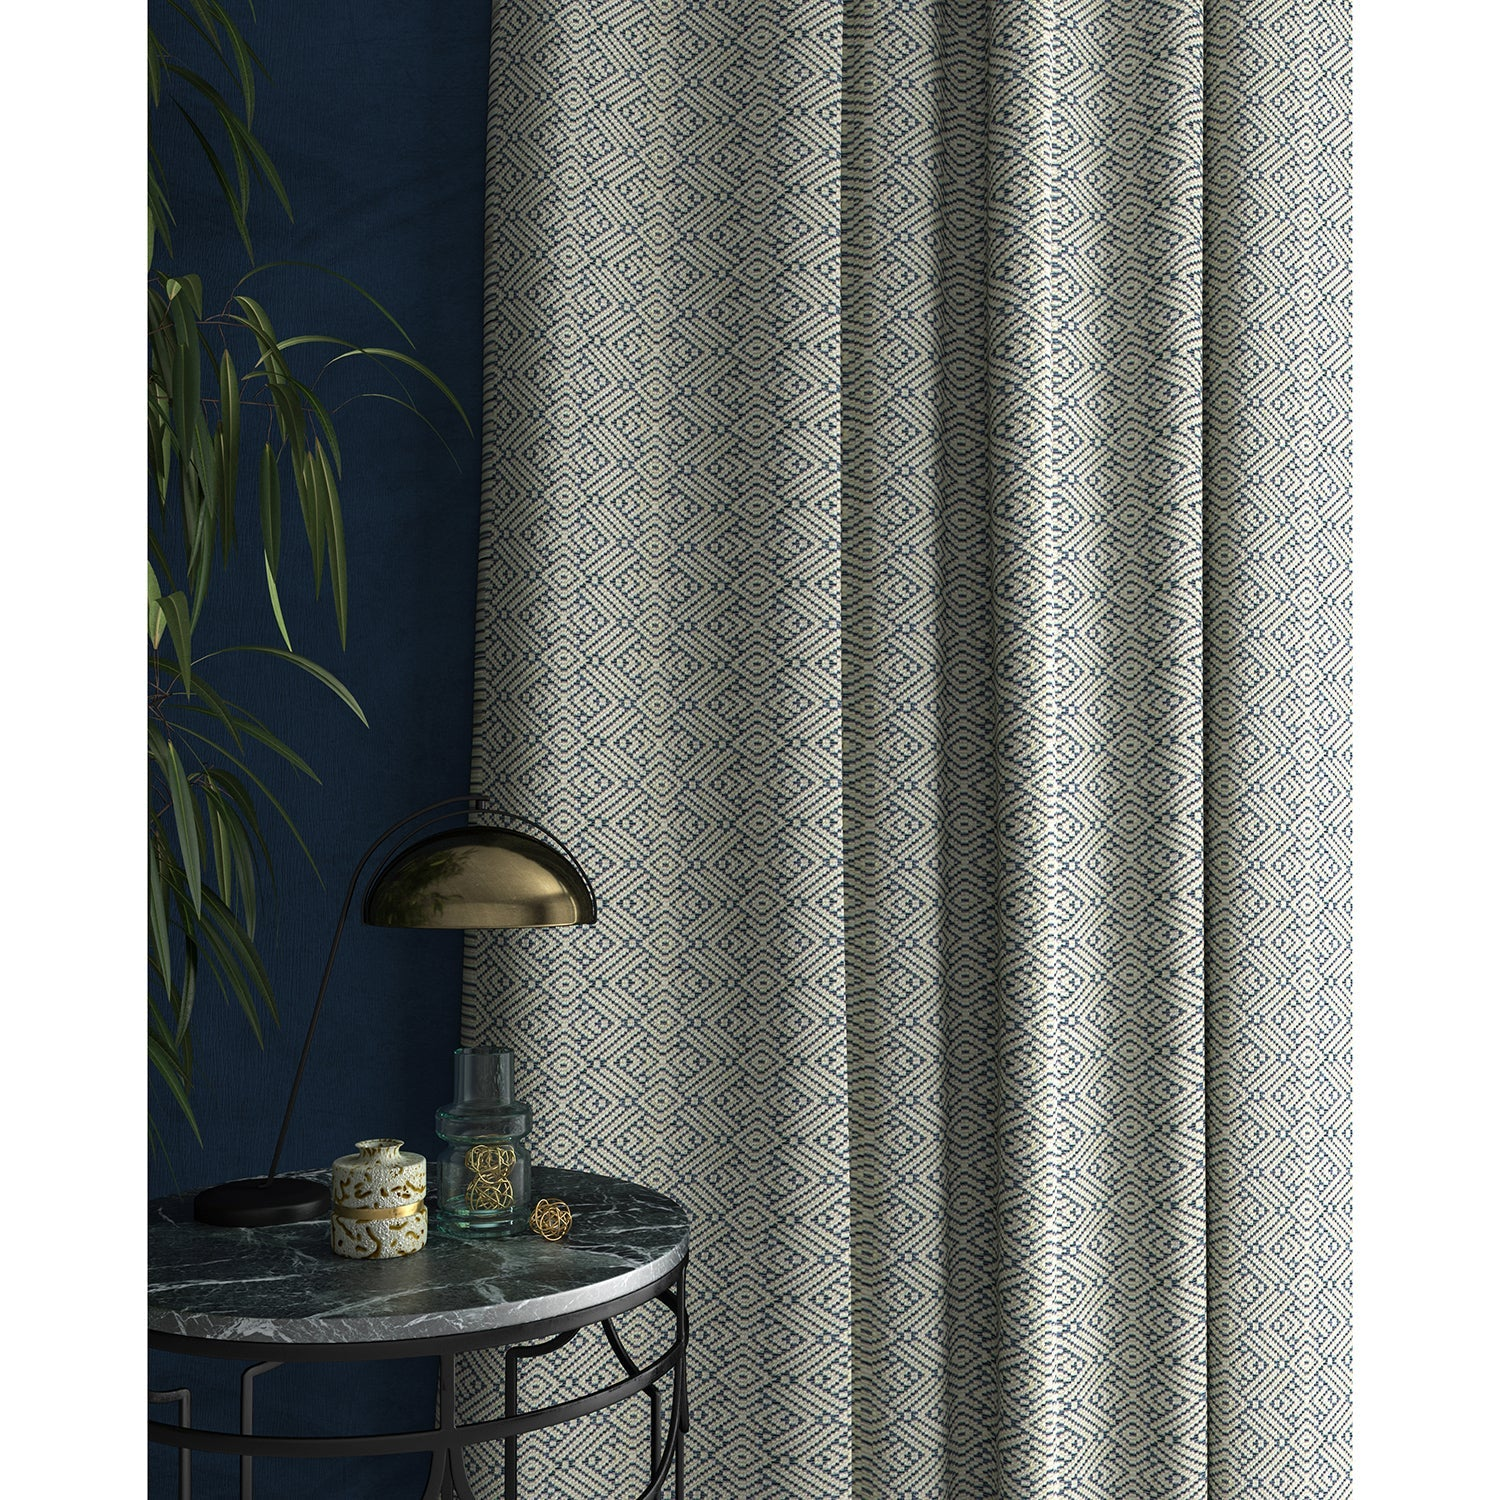 Curtains in a light blue and white geometric weave fabric